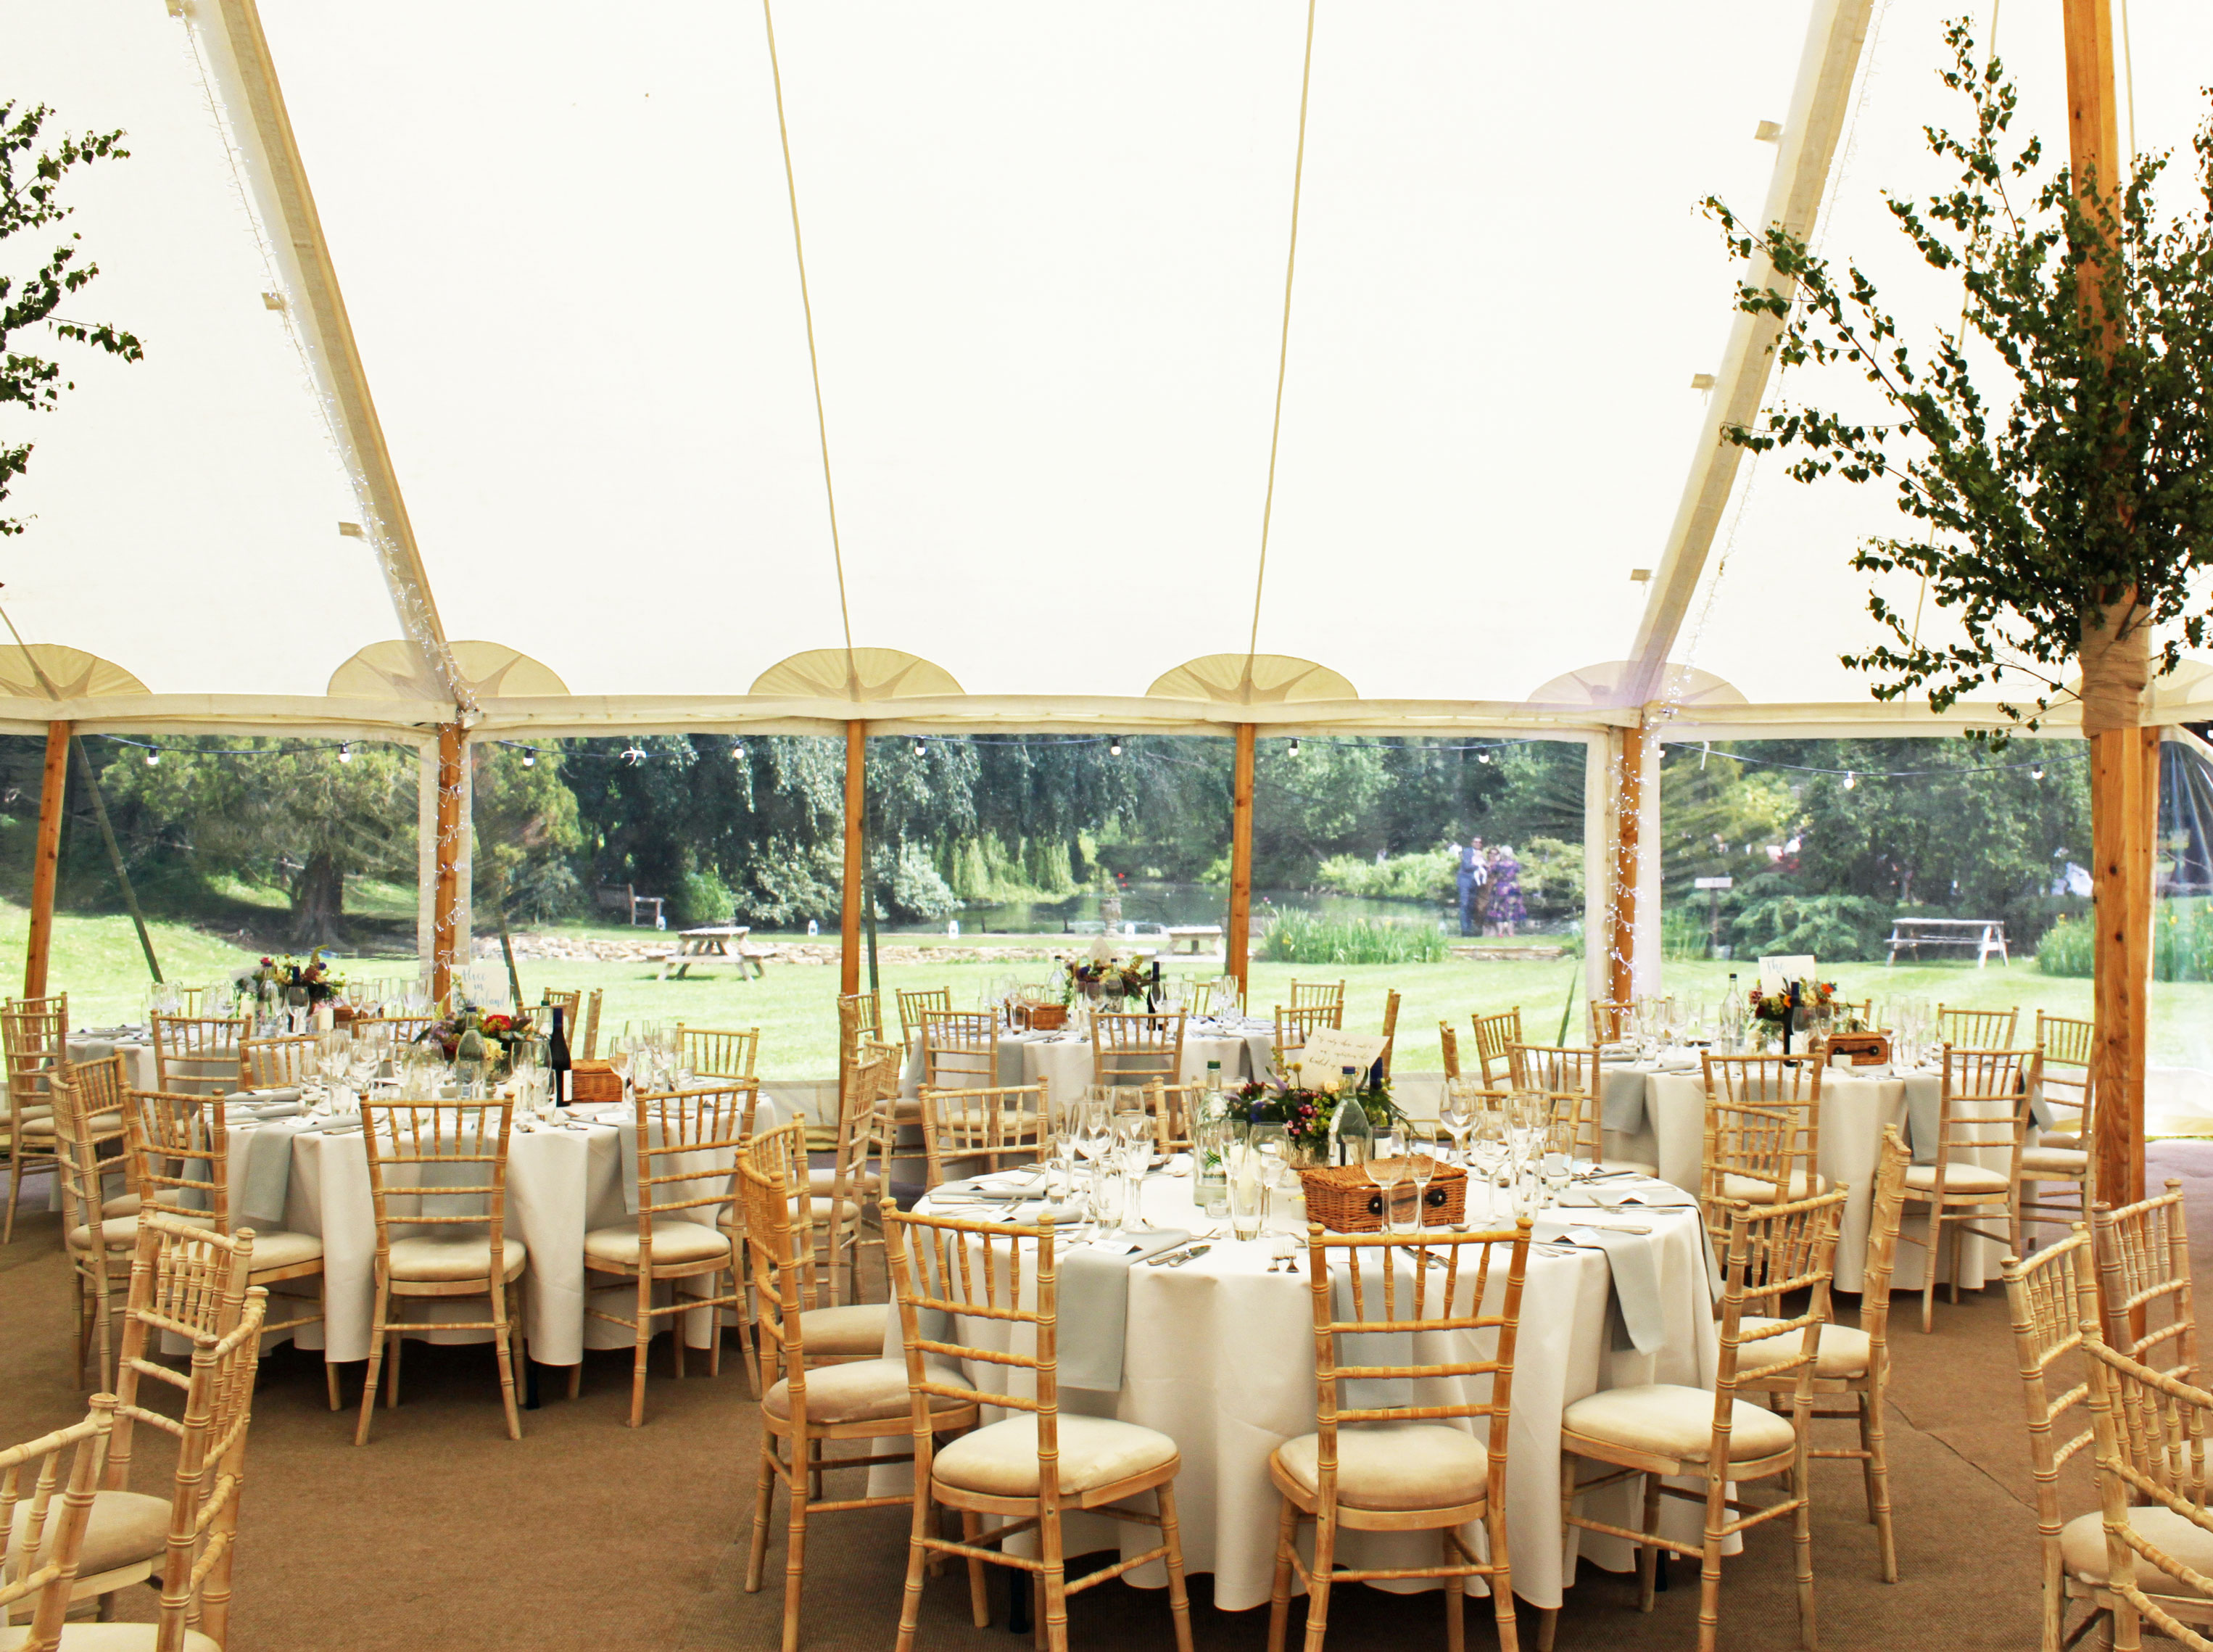 Round tables with white tablecloths and silver birch sprigs on the poles inside a 80 x 40 foot traditional canvas pole tent marquee